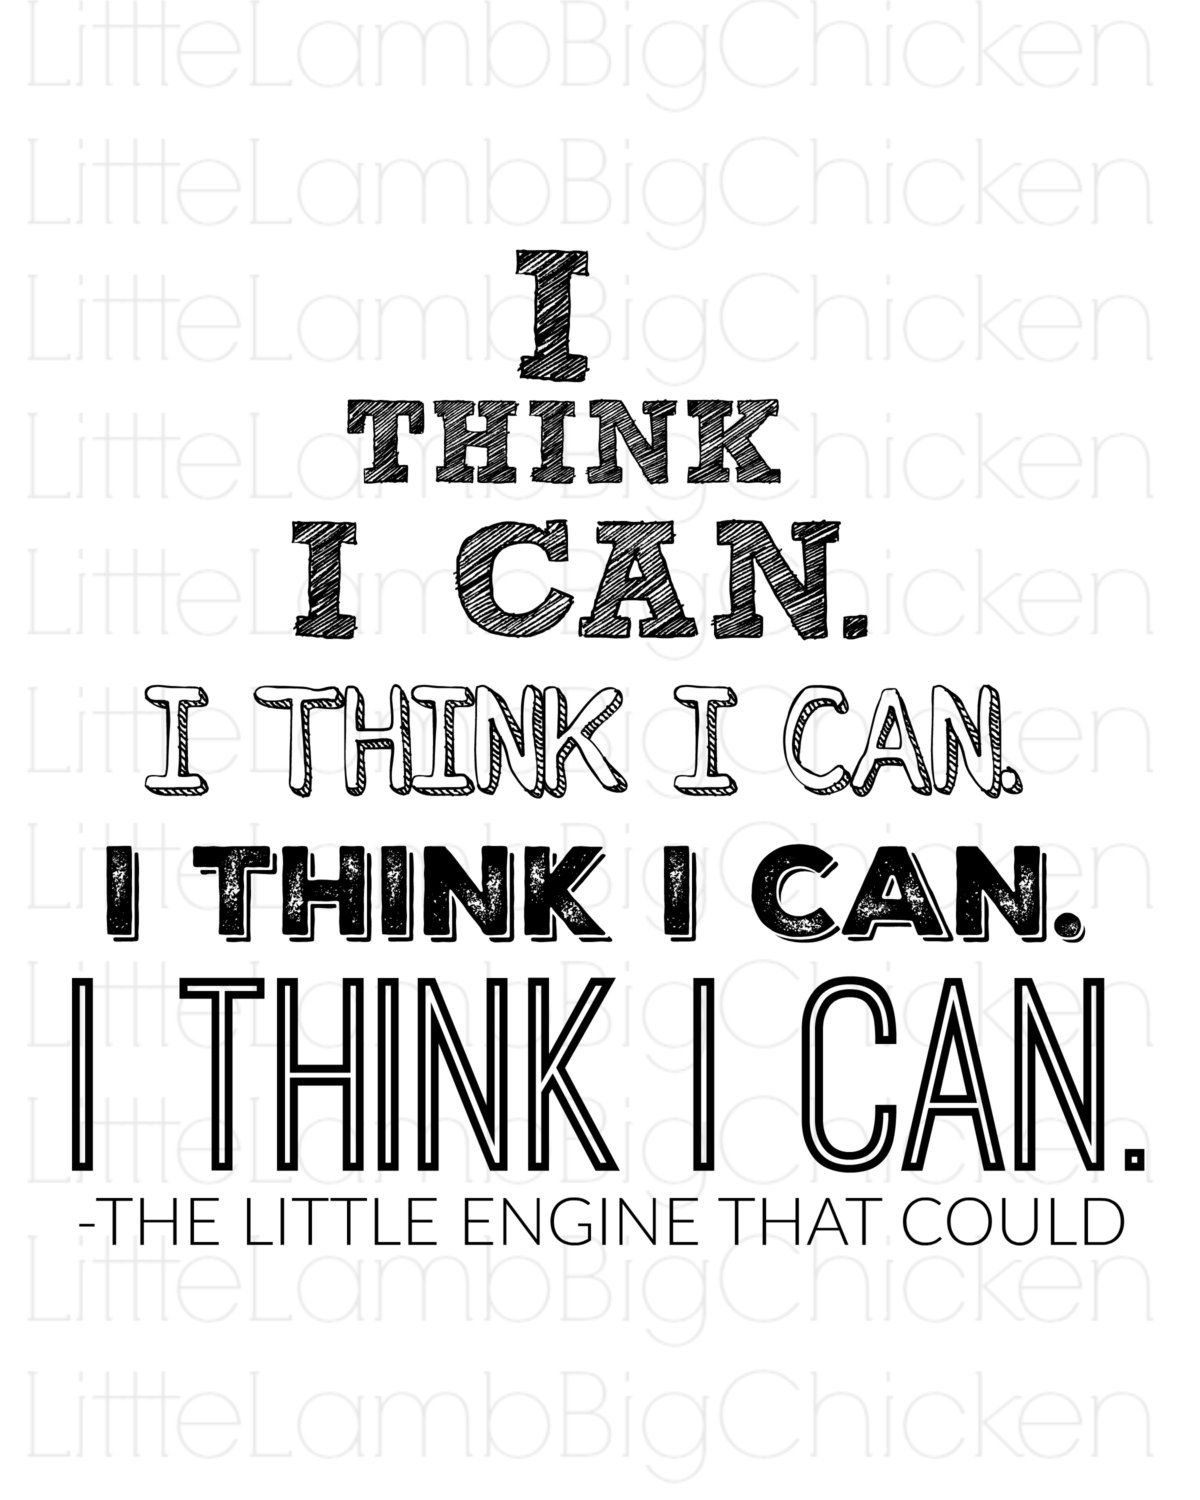 I Think I Can I Think I Can I Think I Can I Think I Can